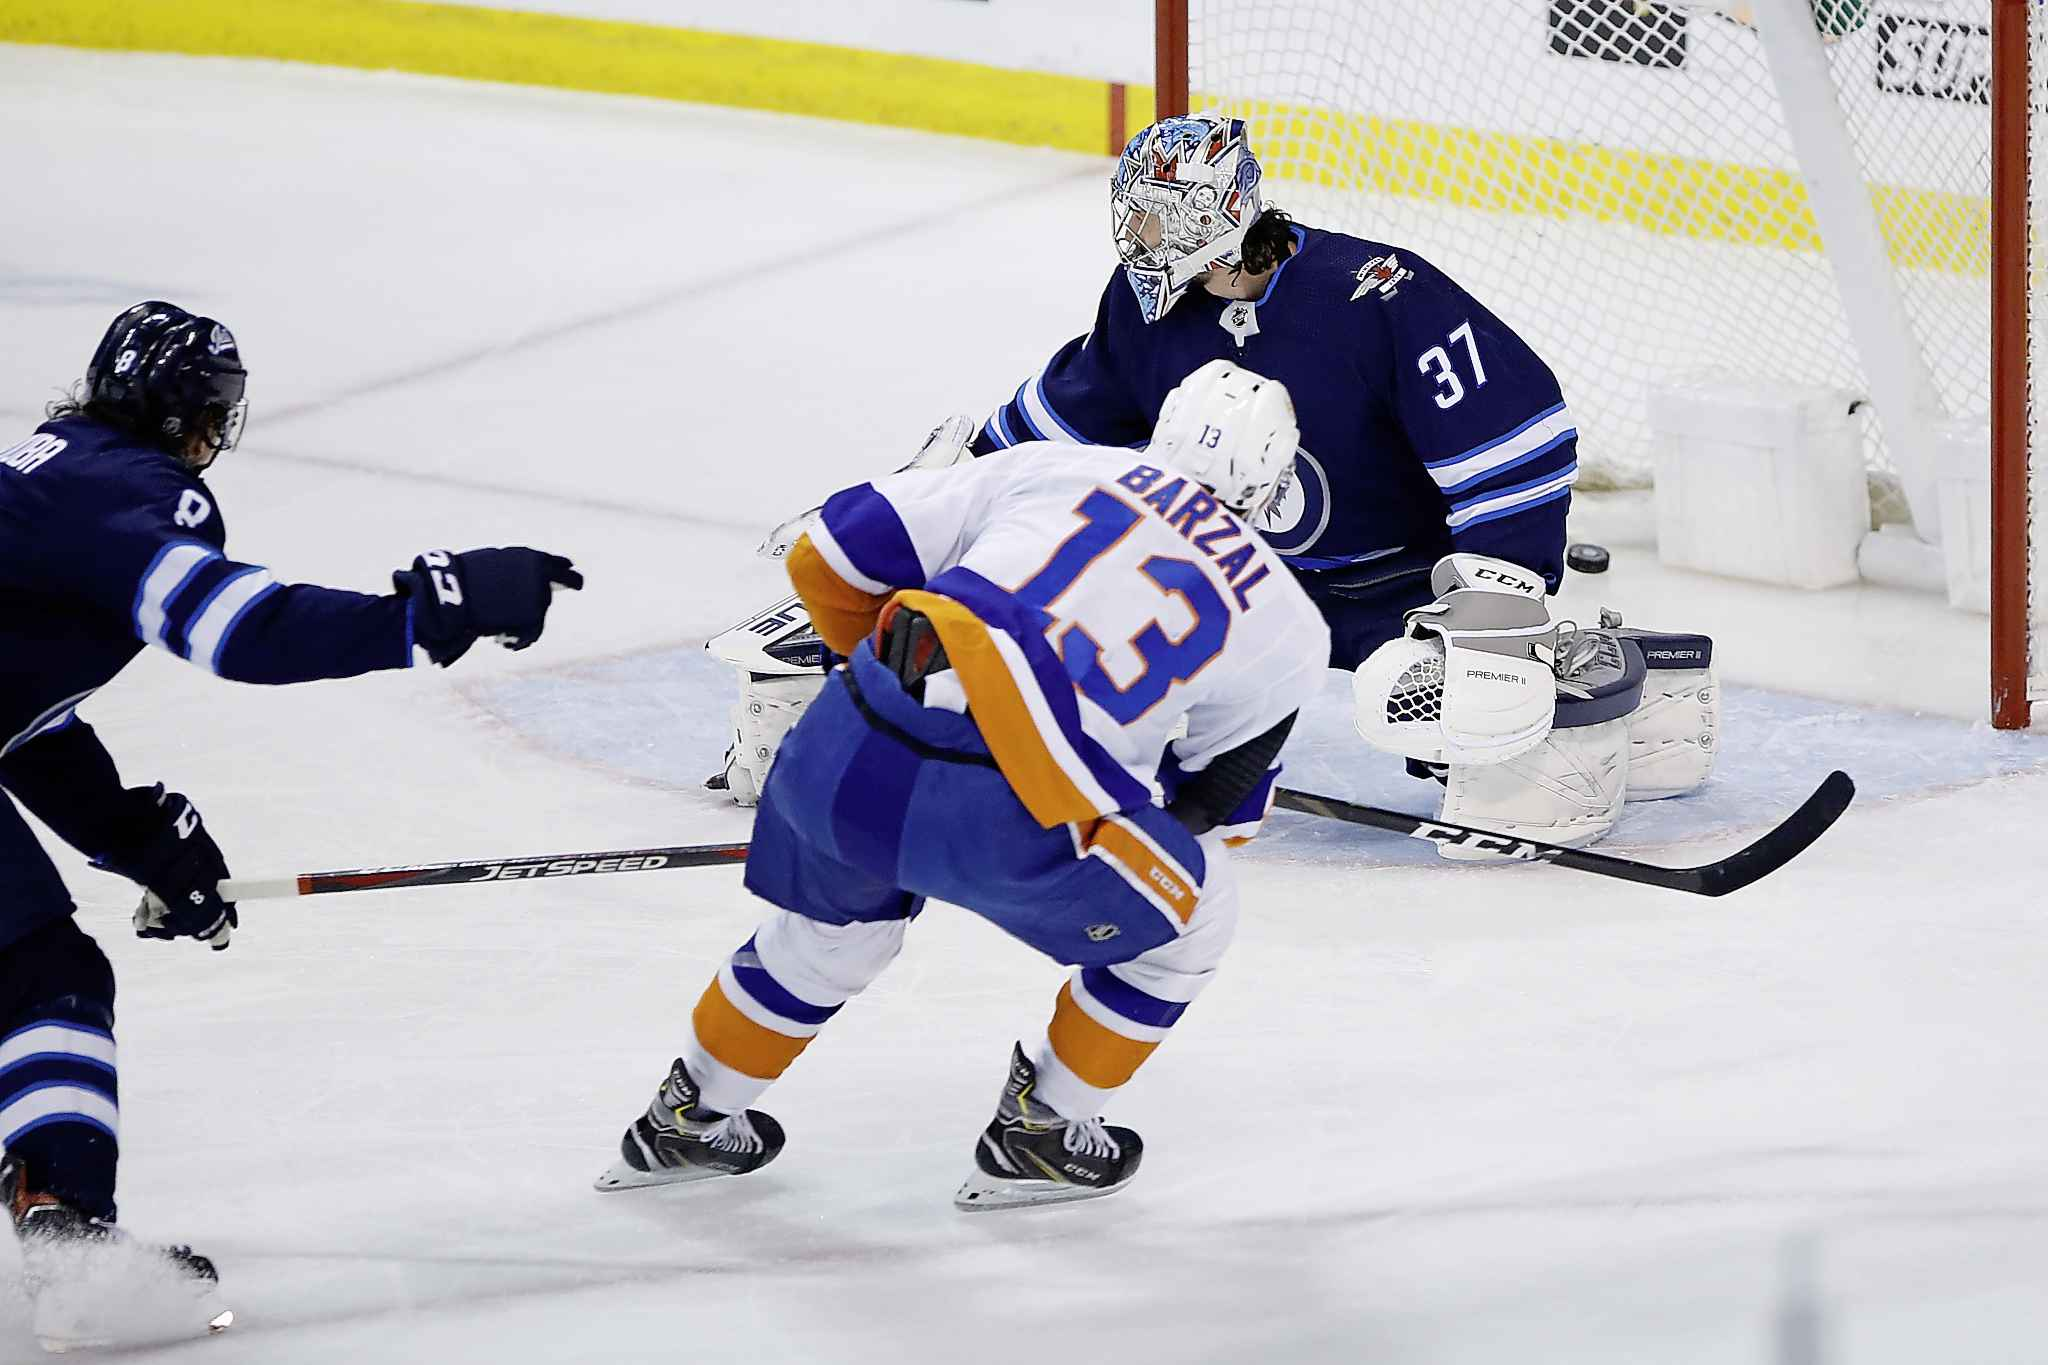 Winnipeg Jets goaltender Connor Hellebuyck can't stop a shot by New York Islanders' Mathew Barzal during the first period.